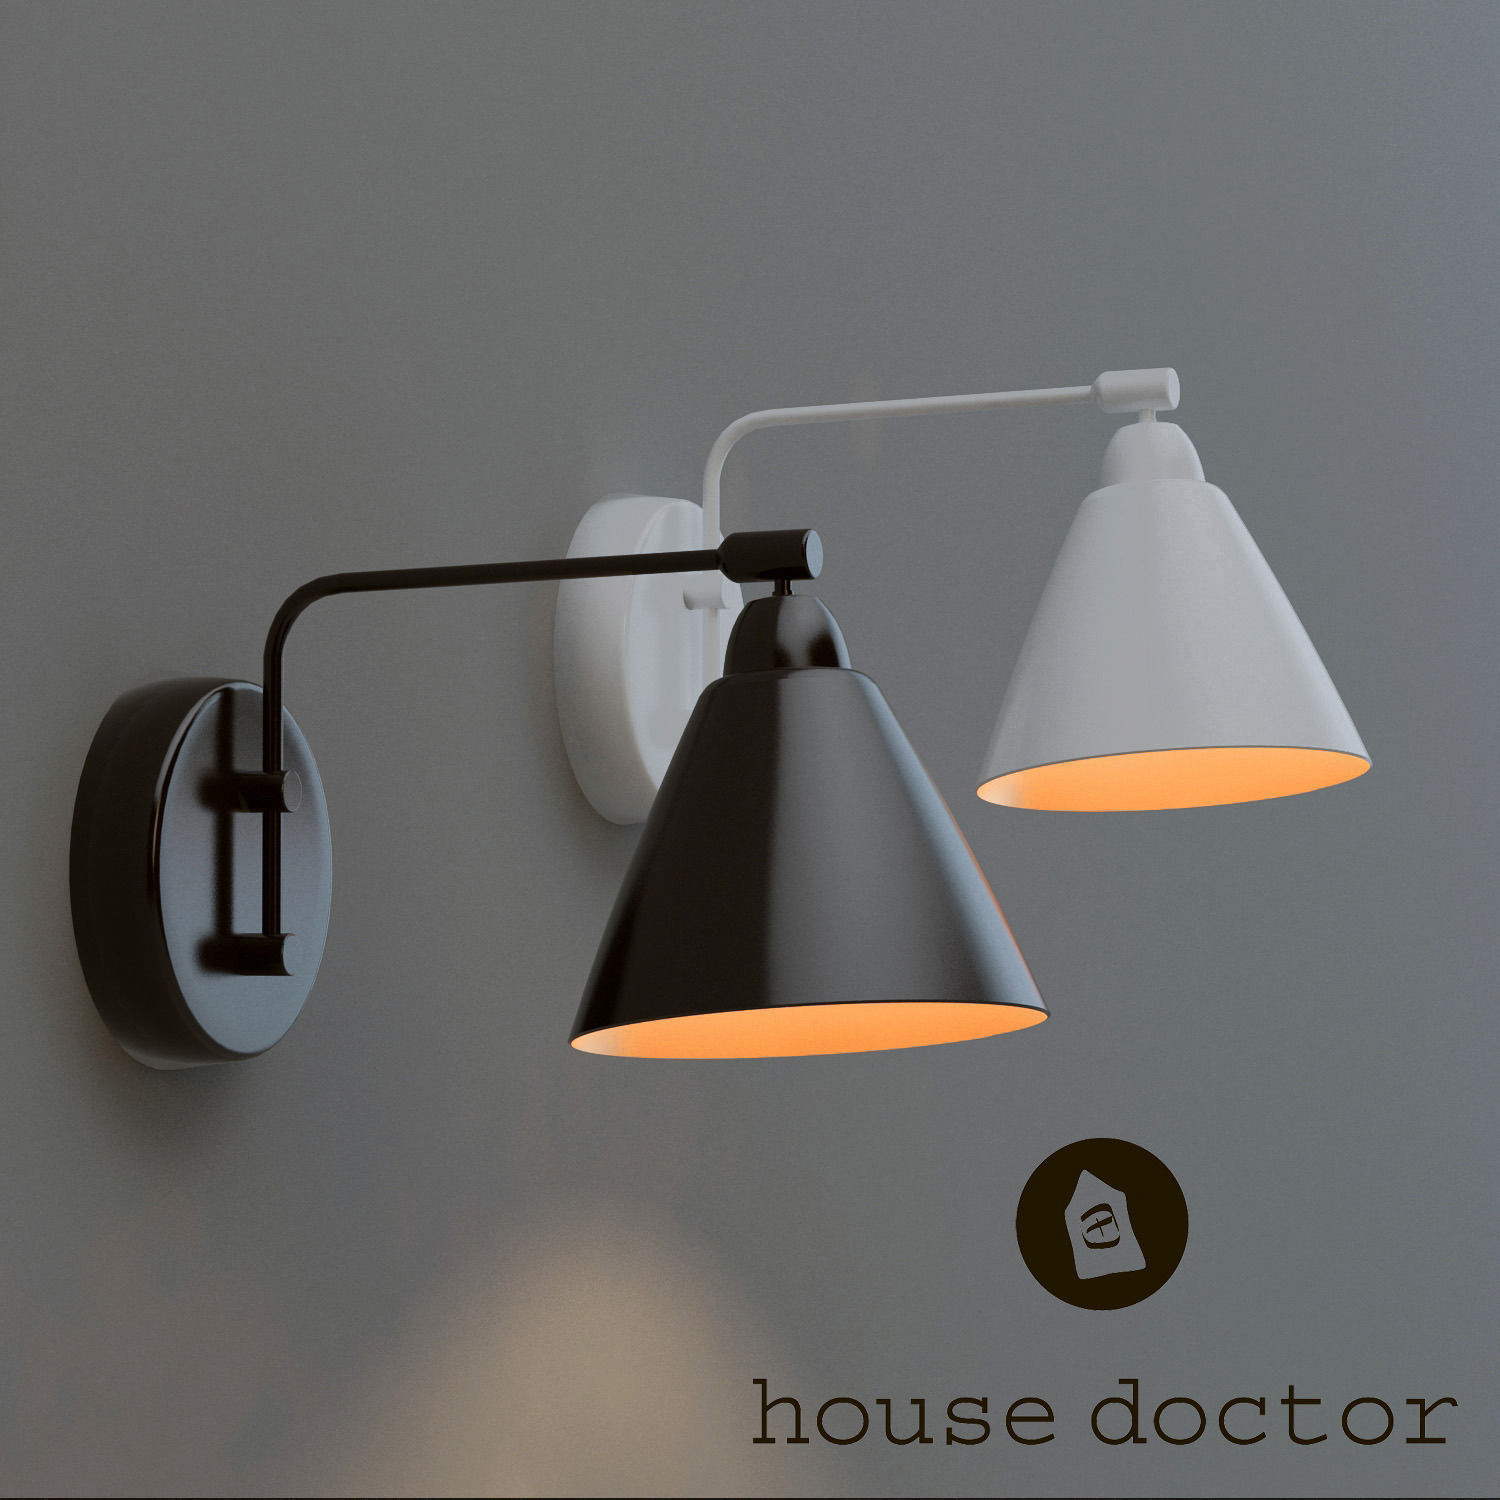 lamp house doctor 3d model max